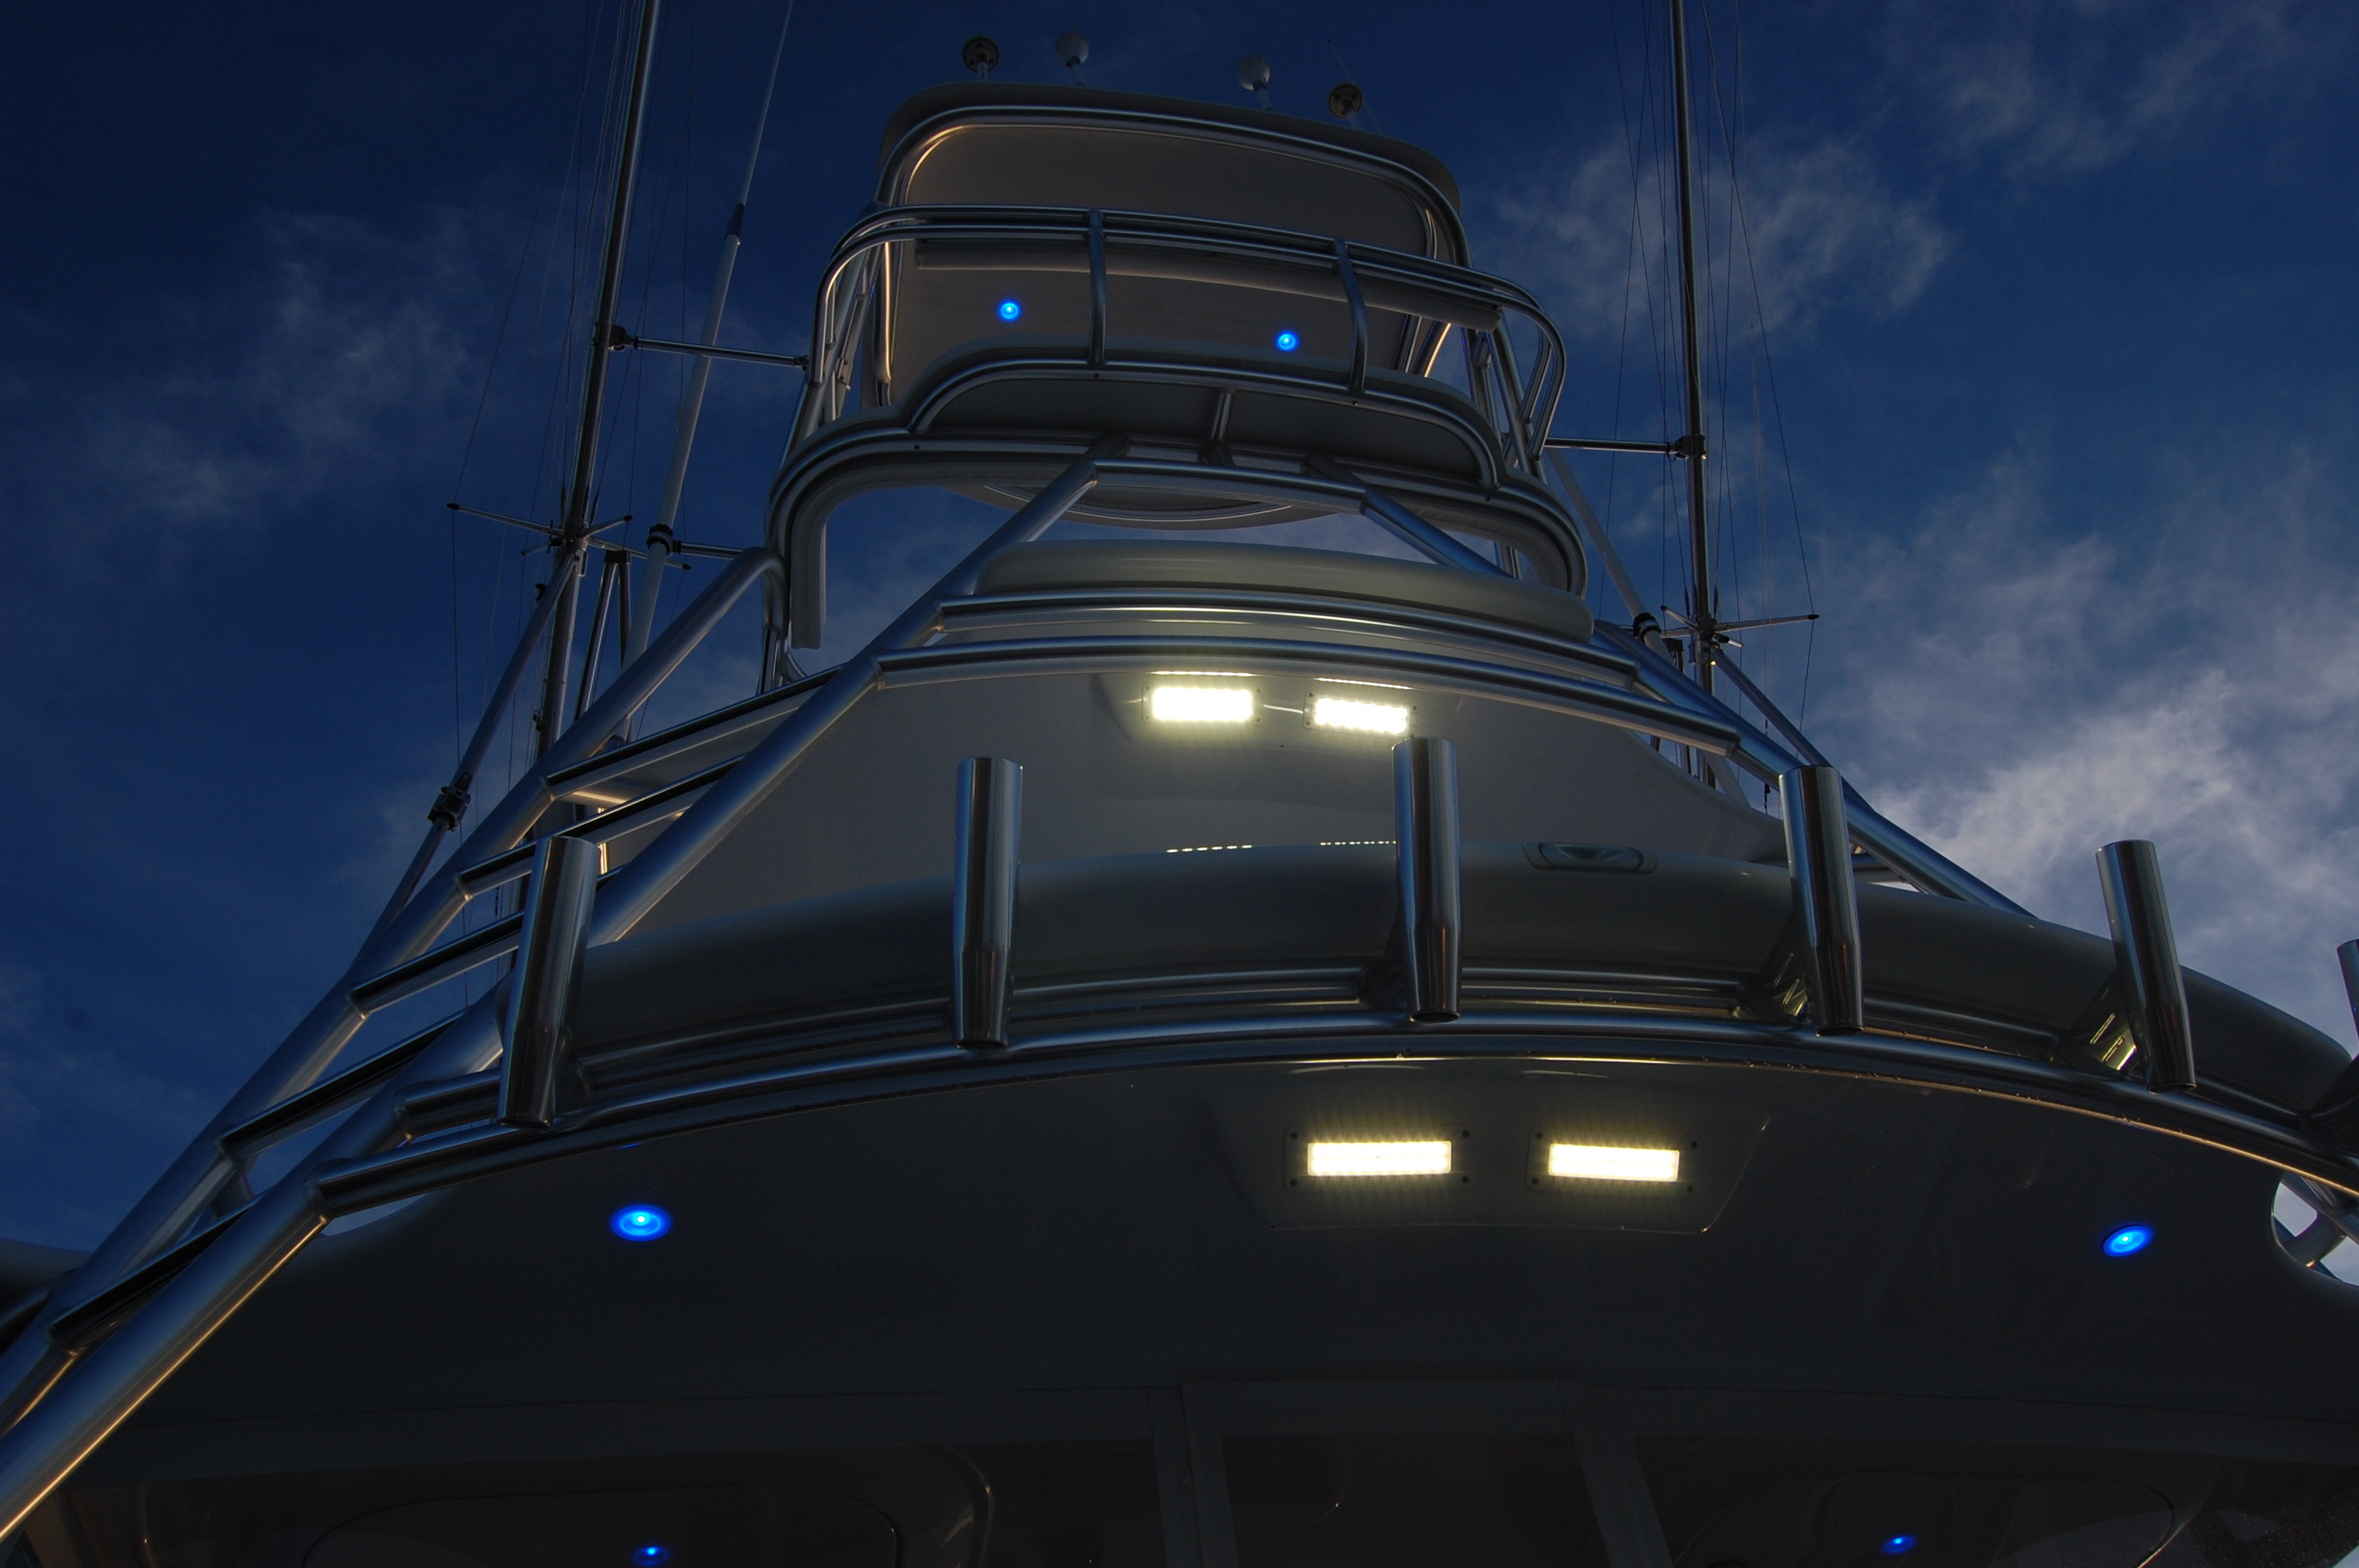 2015 Viking 42 Open, LED Spreader lights